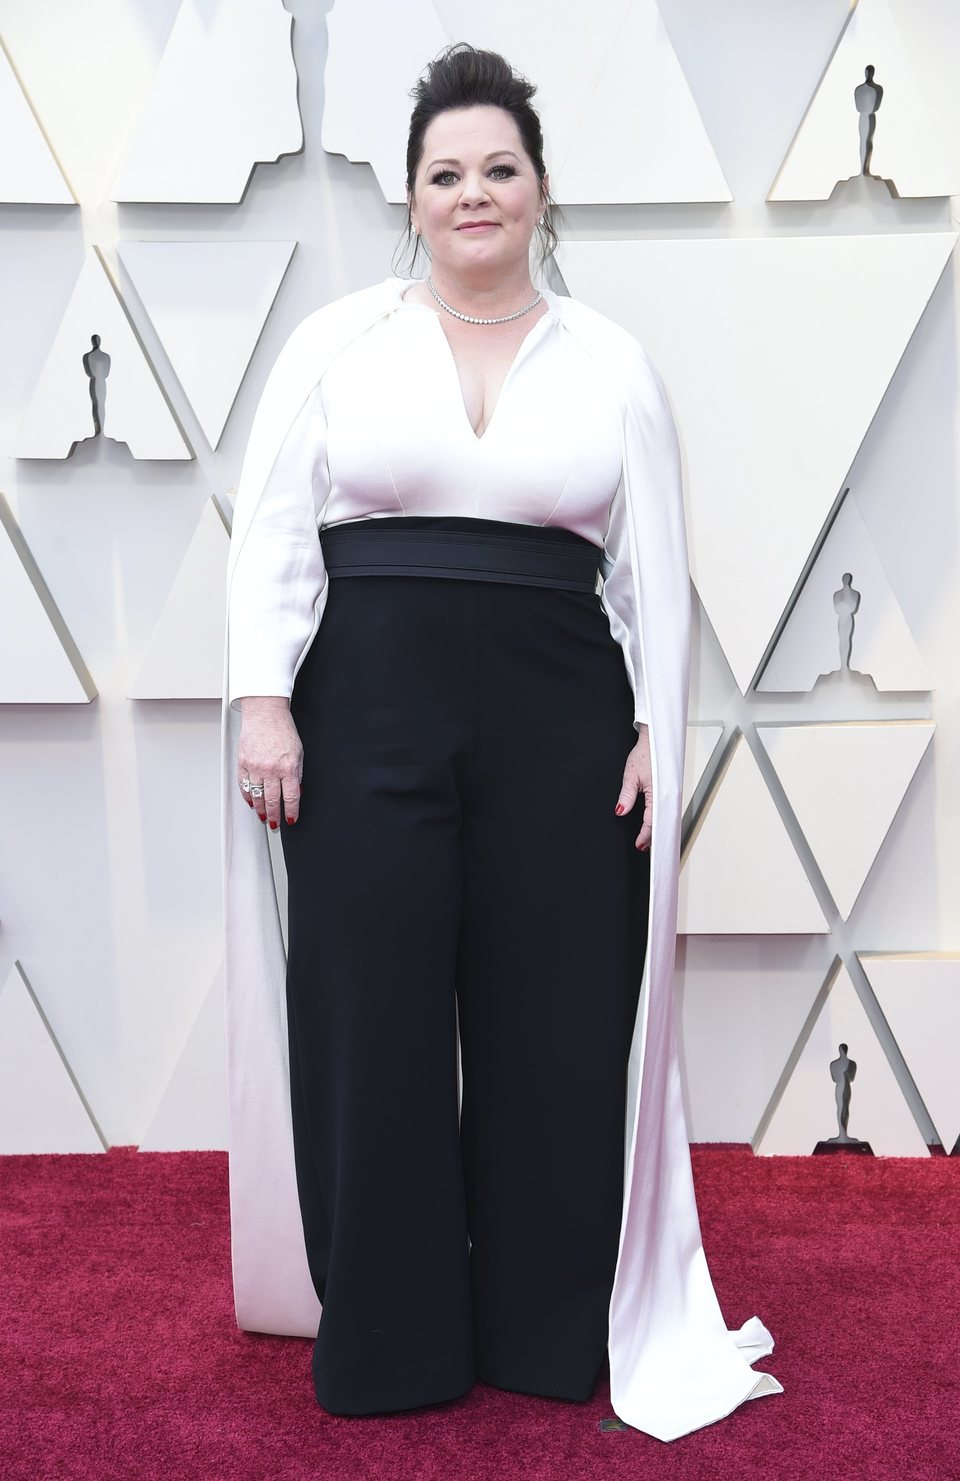 Melissa McCarthy on the red carpet at the Oscars 2019